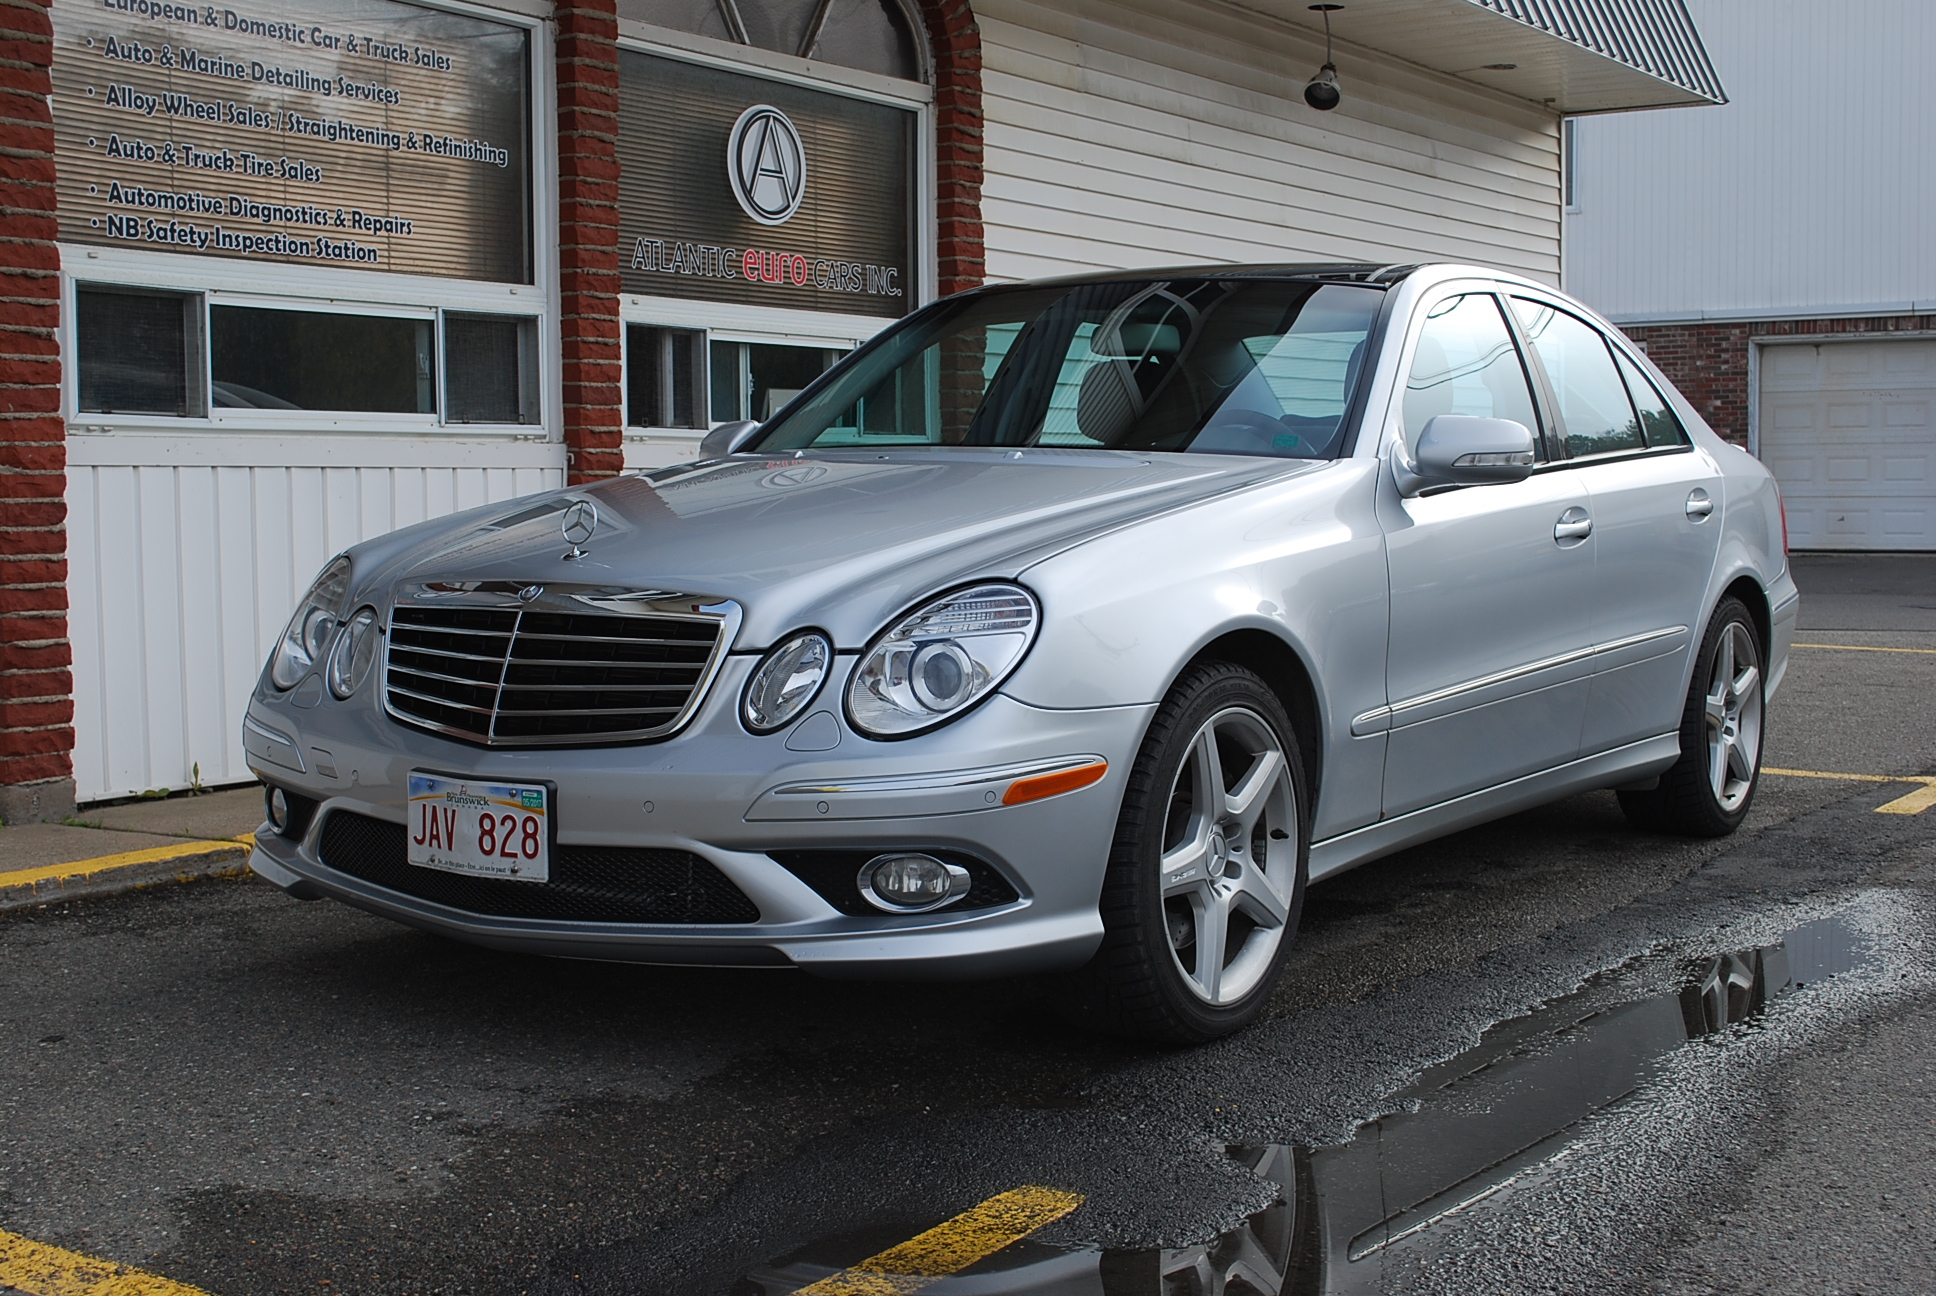 Used 2008 mercedes benz e550 4matic for sale in saint john nb for Mercedes benz e 350 2008